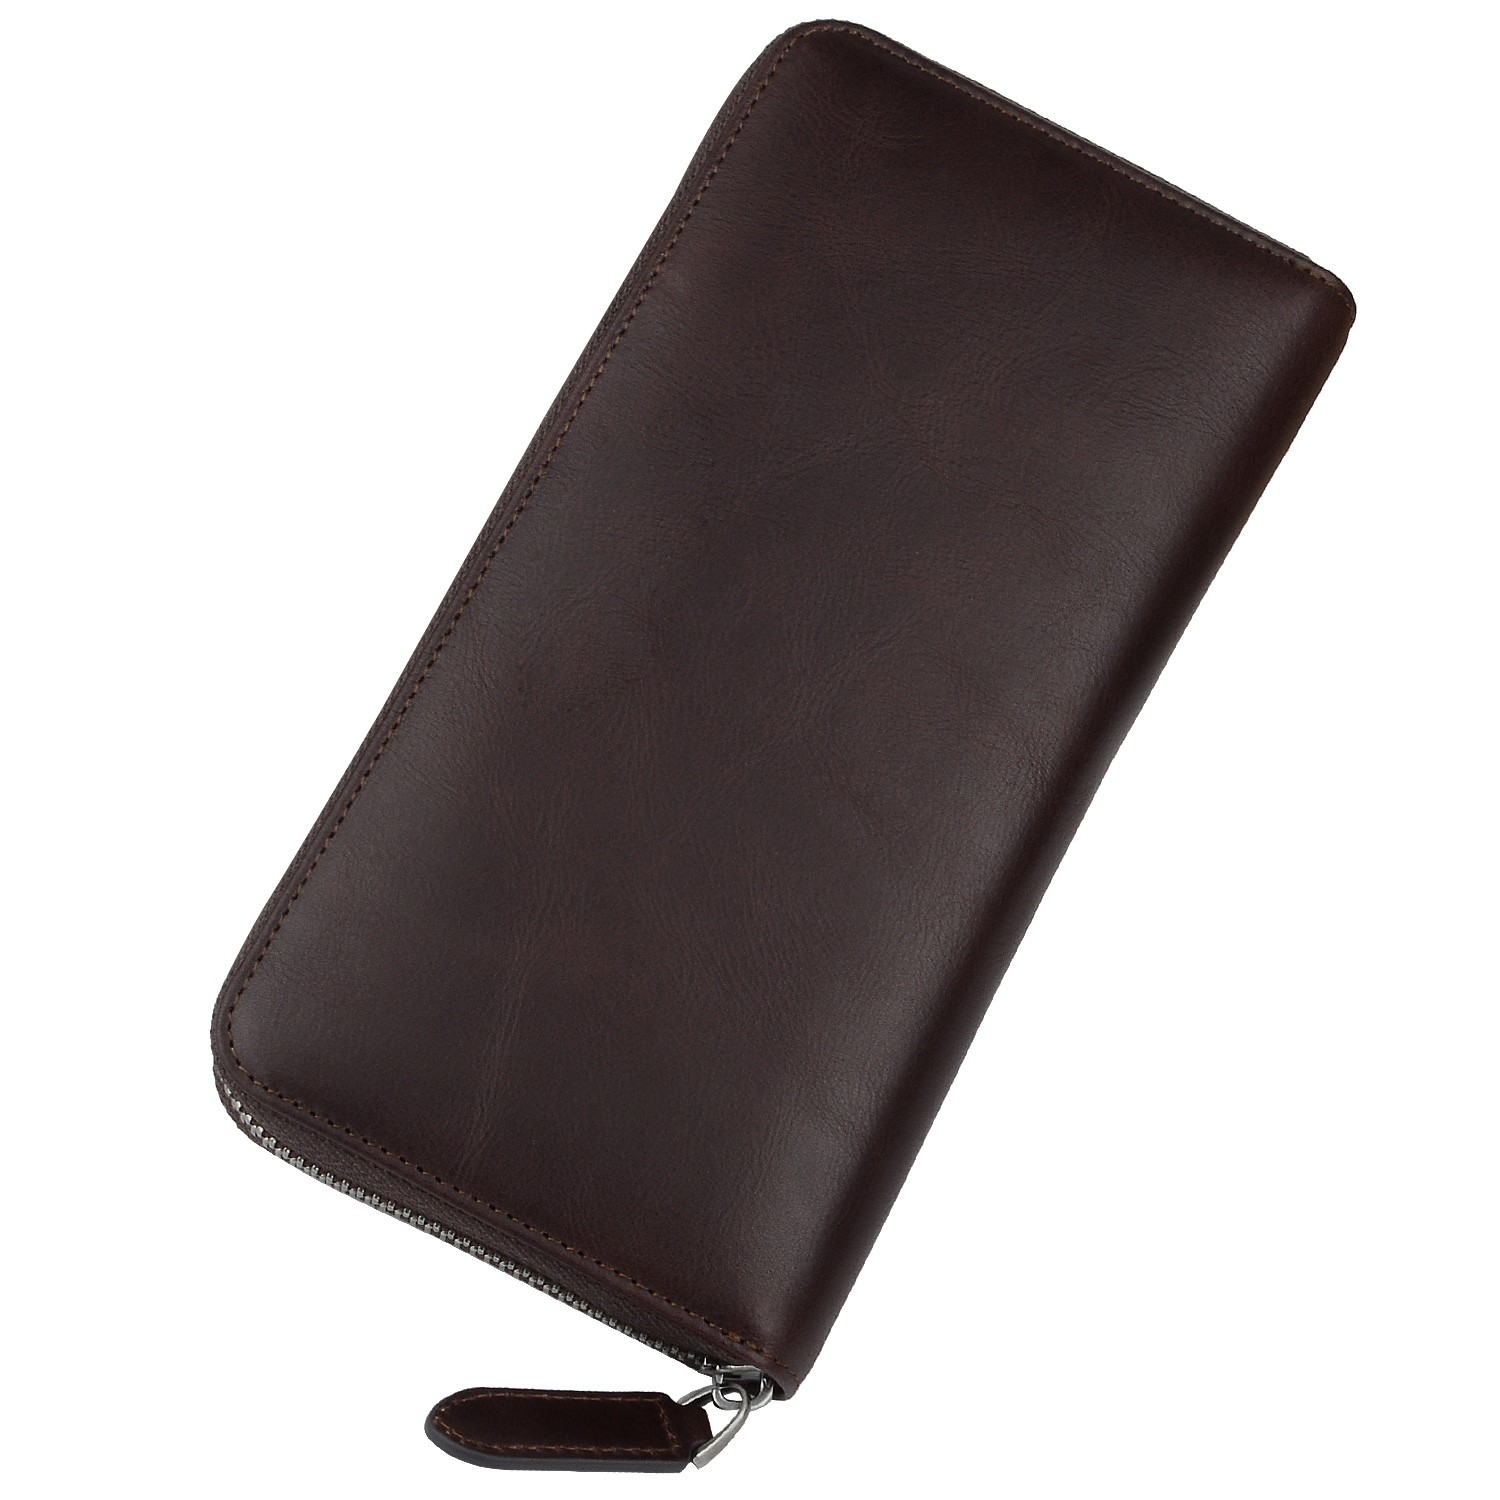 AIVI high quality leather card wallet for sale for iphone XR-1